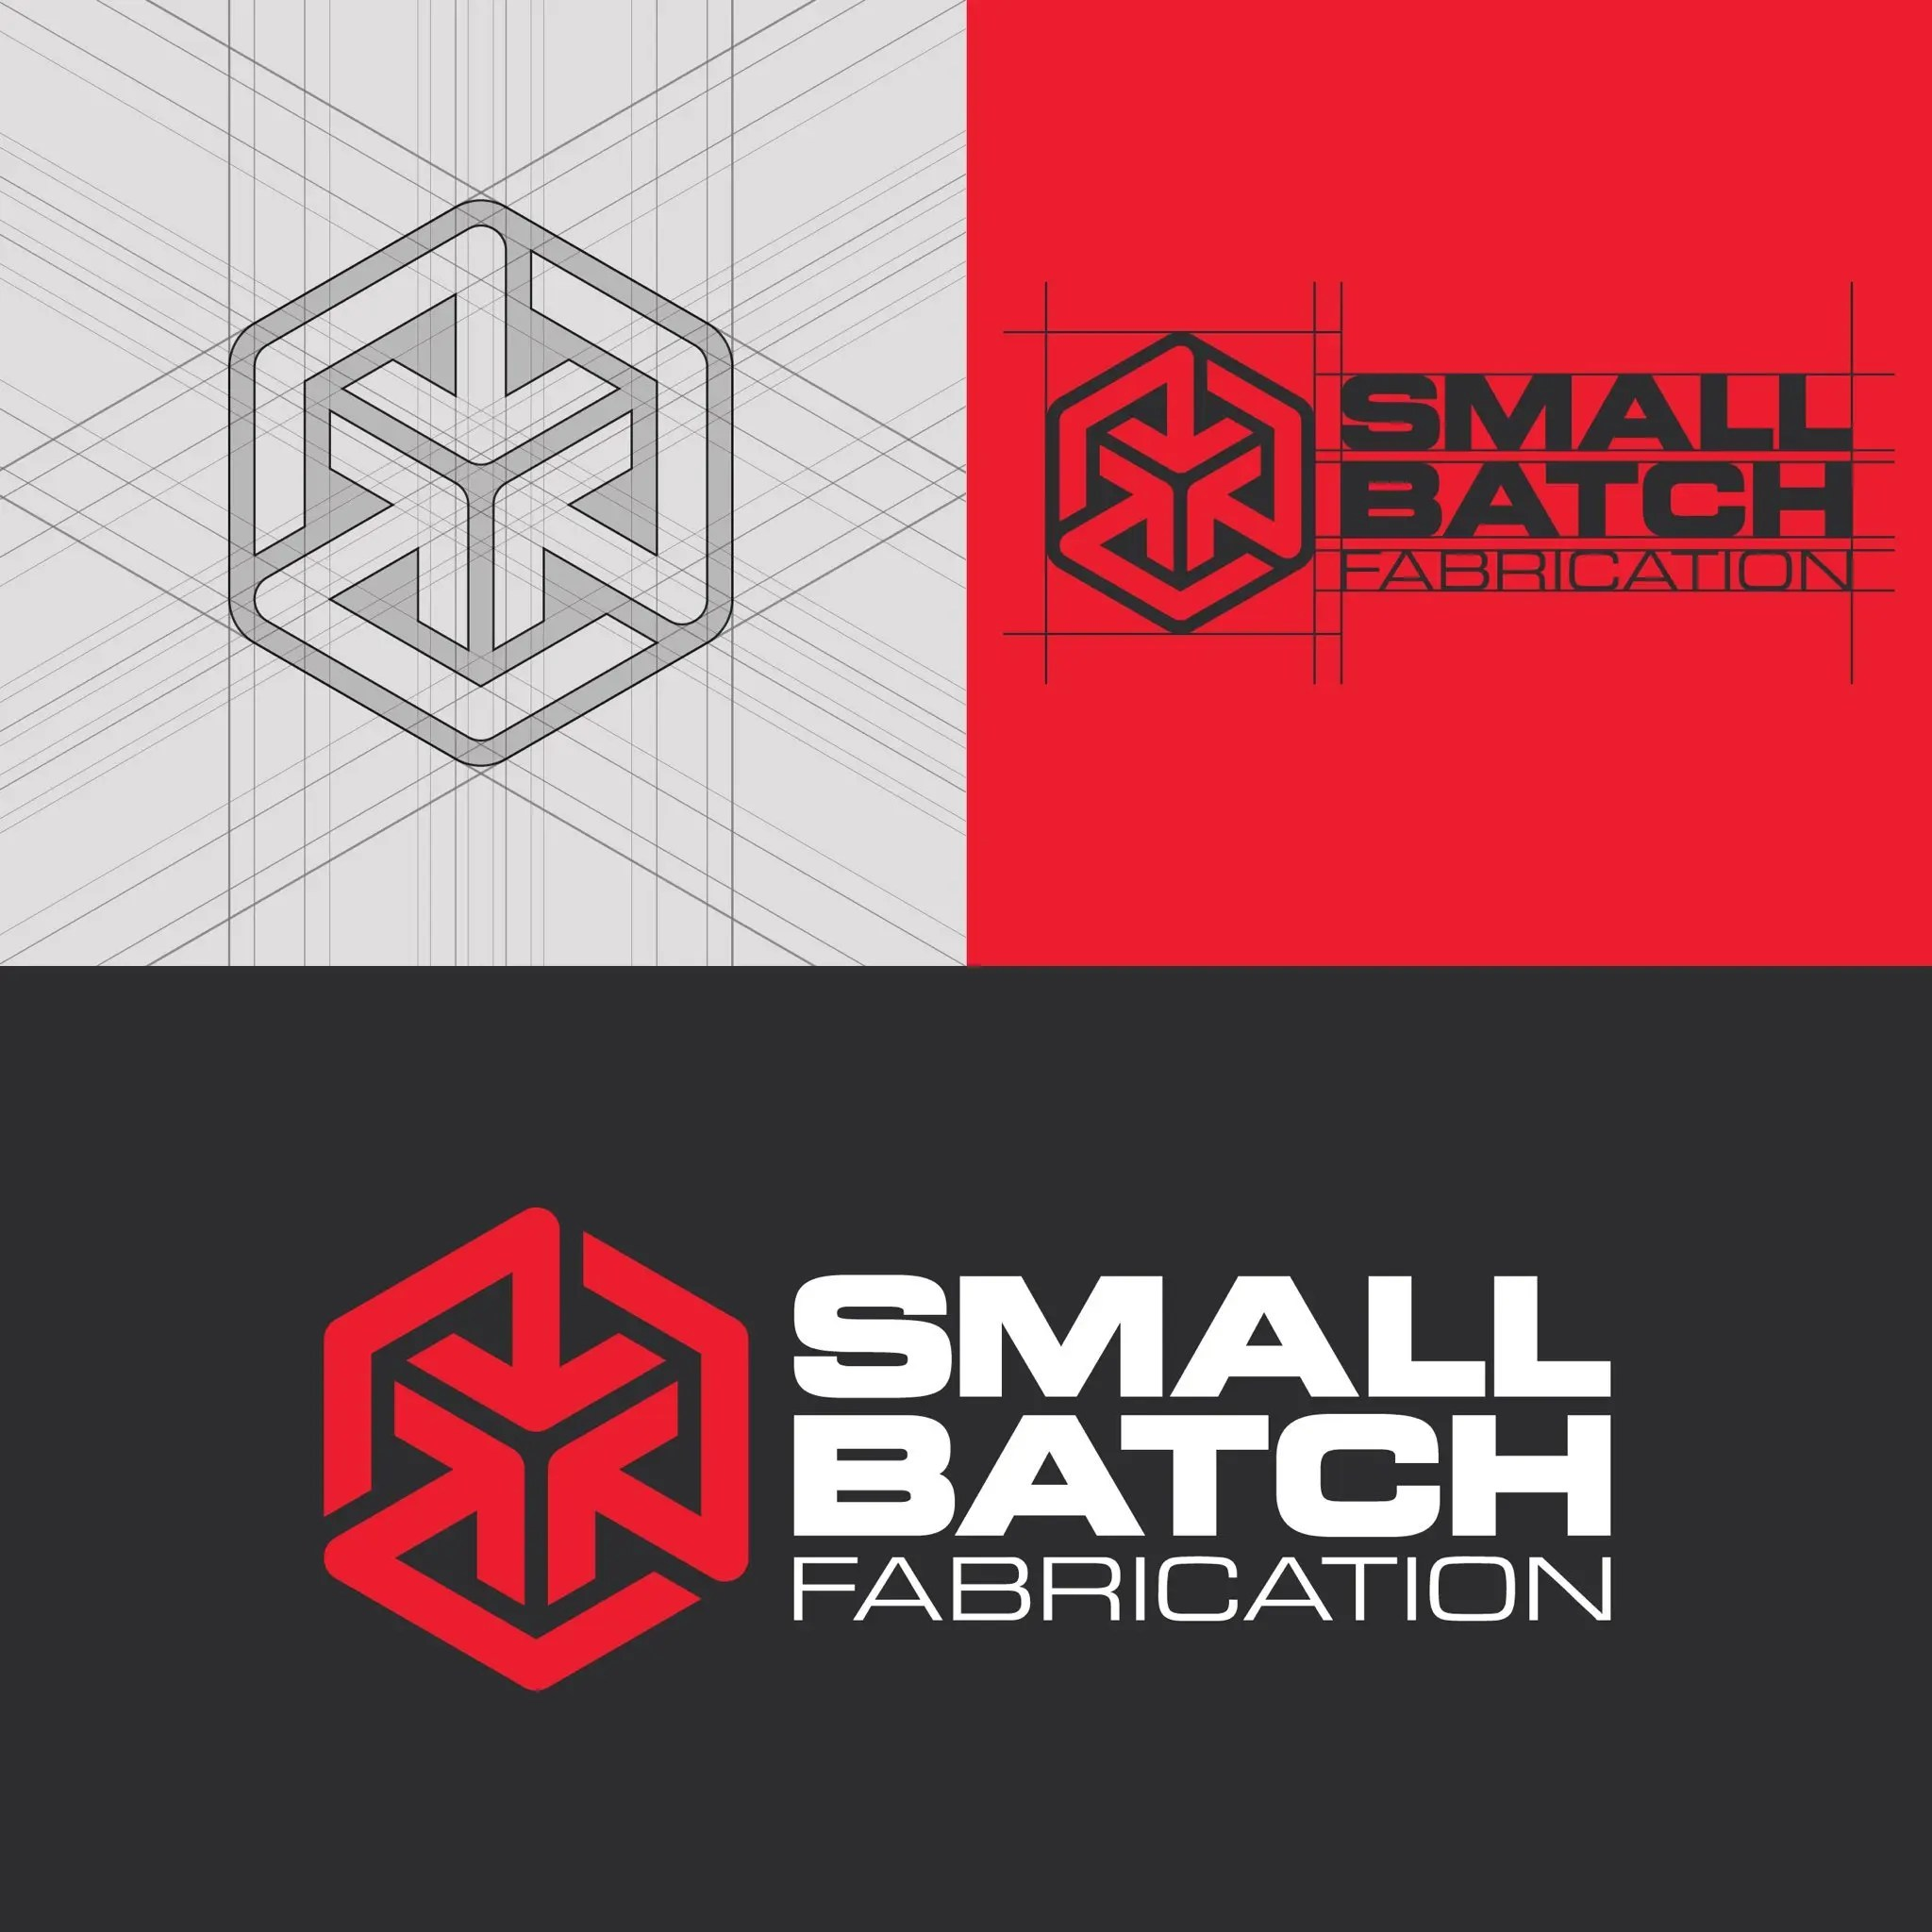 Small Batch Fabrication Brand Logo Design By Design Cypher